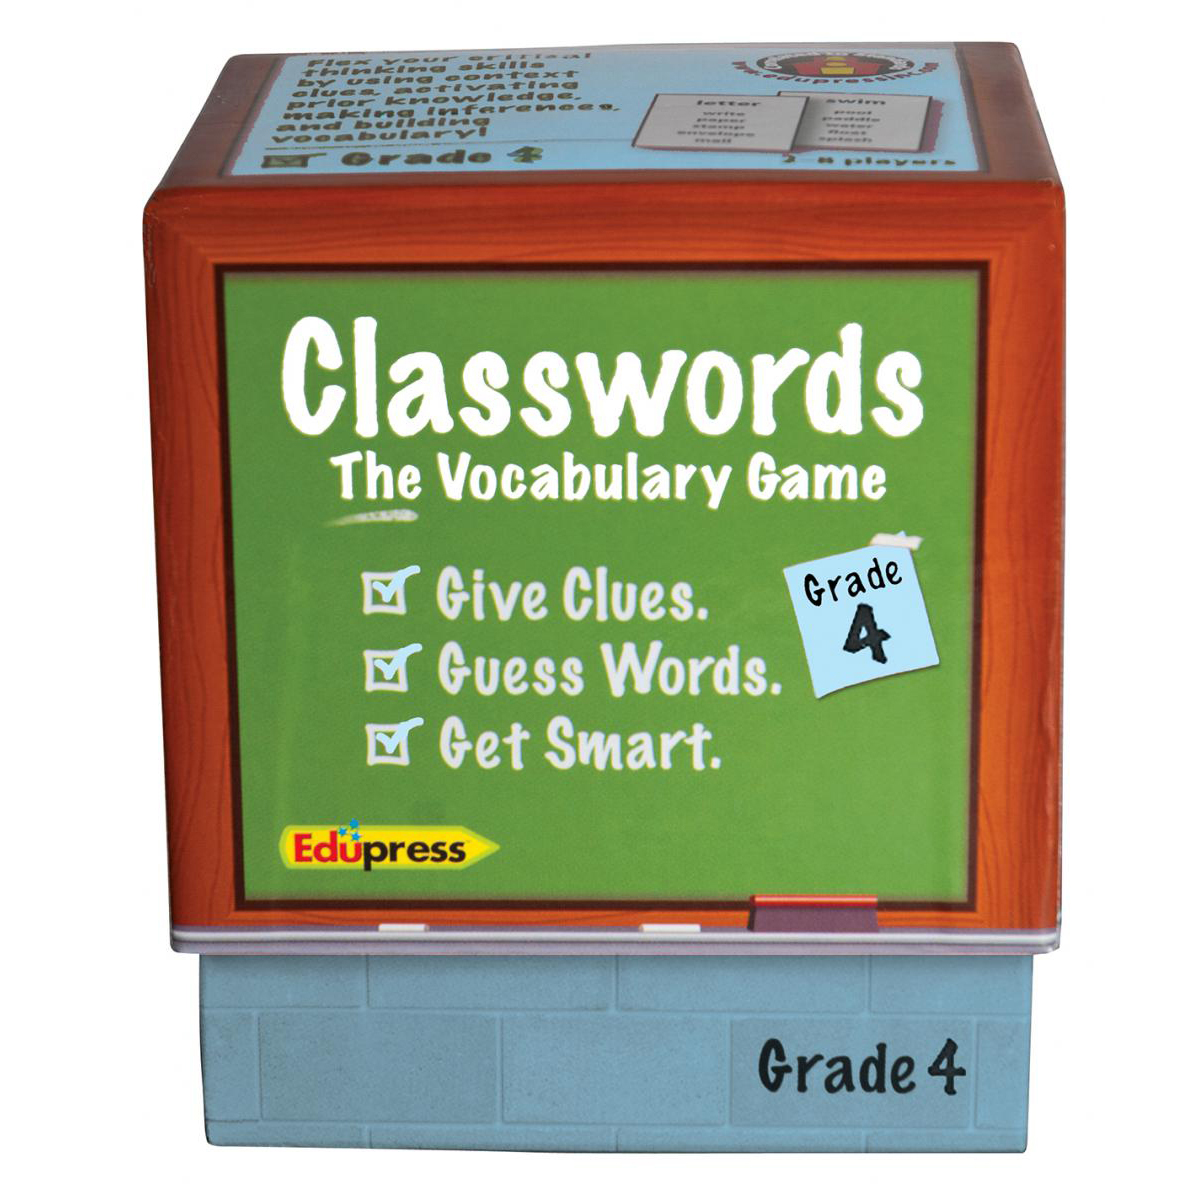 Classwords The Vocabulary Game Gr. 4